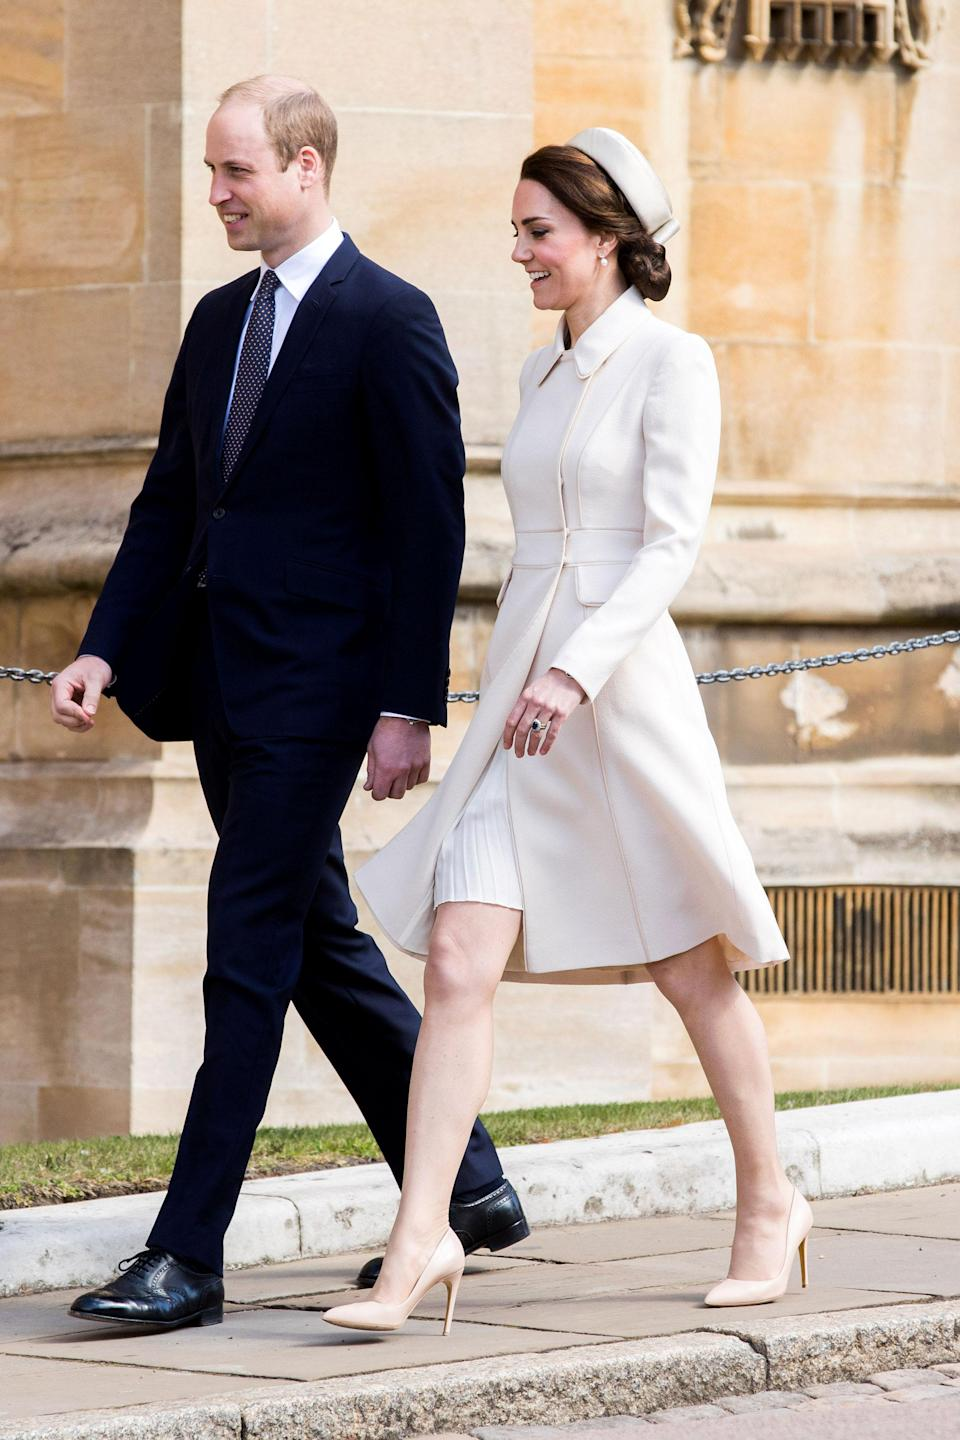 """<p><strong>When:</strong> April 16, 2017 <strong>Where:</strong> Easter Sunday service at St. George's Chapel near England's Windsor Castle <strong>Wearing:</strong> Catherine Walker & Co bespoke coat <strong>Get the Look:</strong> Black Halo 3/4 Sleeve Jackie O Dress, $375; <a href=""""https://click.linksynergy.com/fs-bin/click?id=93xLBvPhAeE&subid=0&offerid=504092.1&type=10&tmpid=23604&RD_PARM1=https%253A%252F%252Fwww.shopbop.com%252Fsleeve-jackie-dress-black-halo%252Fvp%252Fv%253D1%252F1526060763.htm%253Ffm%253Dsearch-shopbysize%2526os%253Dfalse&u1=POROYALSKateSpringStyleMM"""" rel=""""nofollow noopener"""" target=""""_blank"""" data-ylk=""""slk:shopbop.com"""" class=""""link rapid-noclick-resp"""">shopbop.com</a> French Connection Long Sleeve Wrap Midi Dress, $135; <a href=""""https://click.linksynergy.com/fs-bin/click?id=93xLBvPhAeE&subid=0&offerid=460292.1&type=10&tmpid=20904&RD_PARM1=http%3A%2F%2Fus.asos.com%2Ffrench-connection%2Ffrench-connection-long-sleeve-wrap-midi-dress%2Fprd%2F9101315%3Fclr%3Dlinenwhite%2526SearchQuery%3Dwhite%2520long%2520sleeve%2520dress%2526gridcolumn%3D3%2526gridrow%3D17%2526gridsize%3D4%2526pge%3D1%2526pgesize%3D72%2526totalstyles%3D150&u1=POROYALSKateSpringStyleMM"""" rel=""""nofollow noopener"""" target=""""_blank"""" data-ylk=""""slk:asos.com"""" class=""""link rapid-noclick-resp"""">asos.com</a> Kate Belted Shawl Collar Coat, $23; <a href=""""http://www.anrdoezrs.net/links/8029122/type/dlg/sid/POROYALSKateSpringStyleMM/http://us.boohoo.com/kate-belted-shawl-collar-coat/AZZ08018.html?color=123"""" rel=""""nofollow noopener"""" target=""""_blank"""" data-ylk=""""slk:boohoo.com"""" class=""""link rapid-noclick-resp"""">boohoo.com</a></p>"""